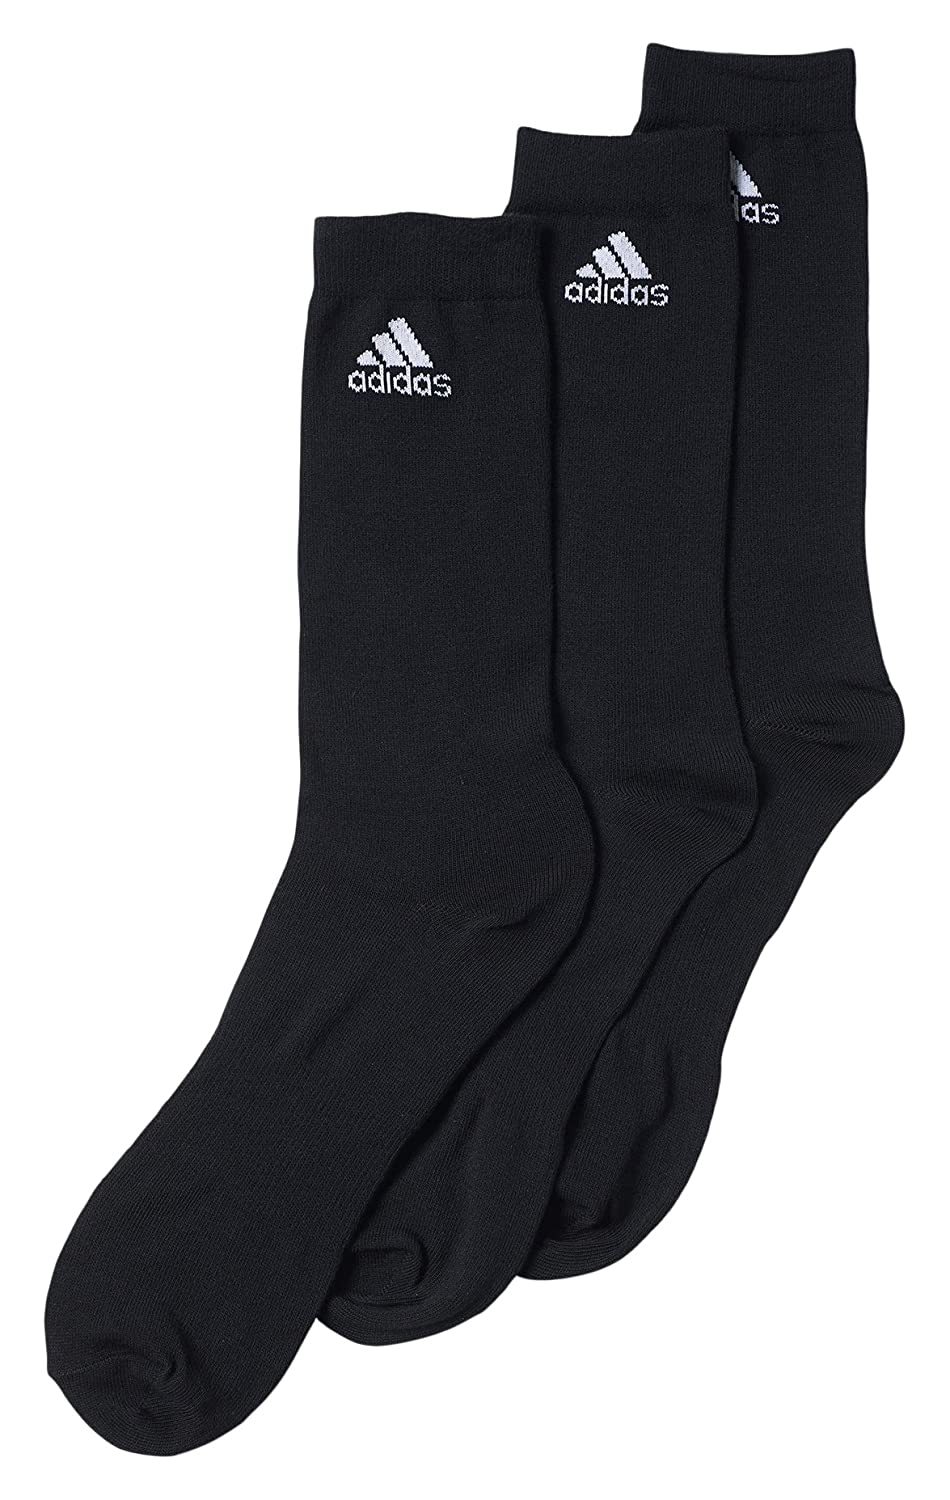 adidas Men's Performance Thin Crew 3 Pair Socks AA2314441313